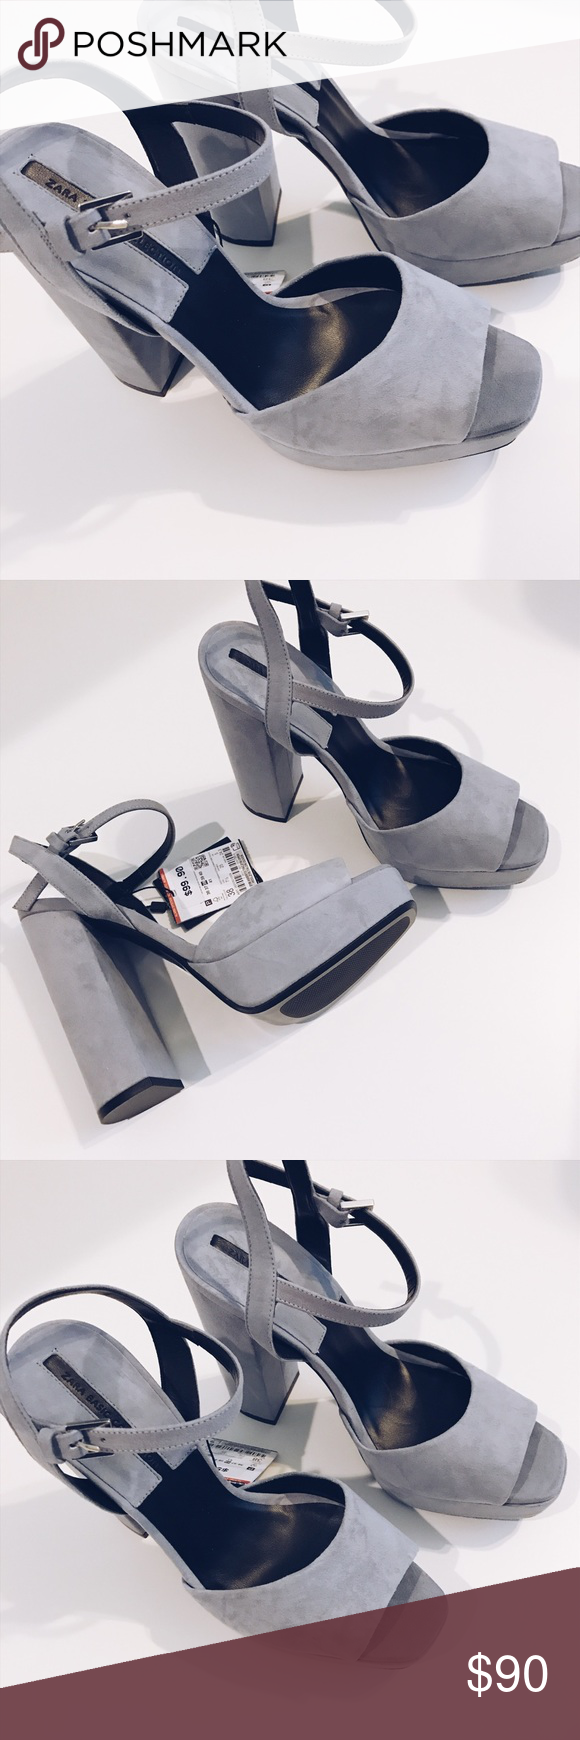 Zara | Blue Suede Block Heels NWT never been worn block heels/sandals. Blue Grey color, very chic. Zara 38 or 7 1/2. Zara Shoes Heels